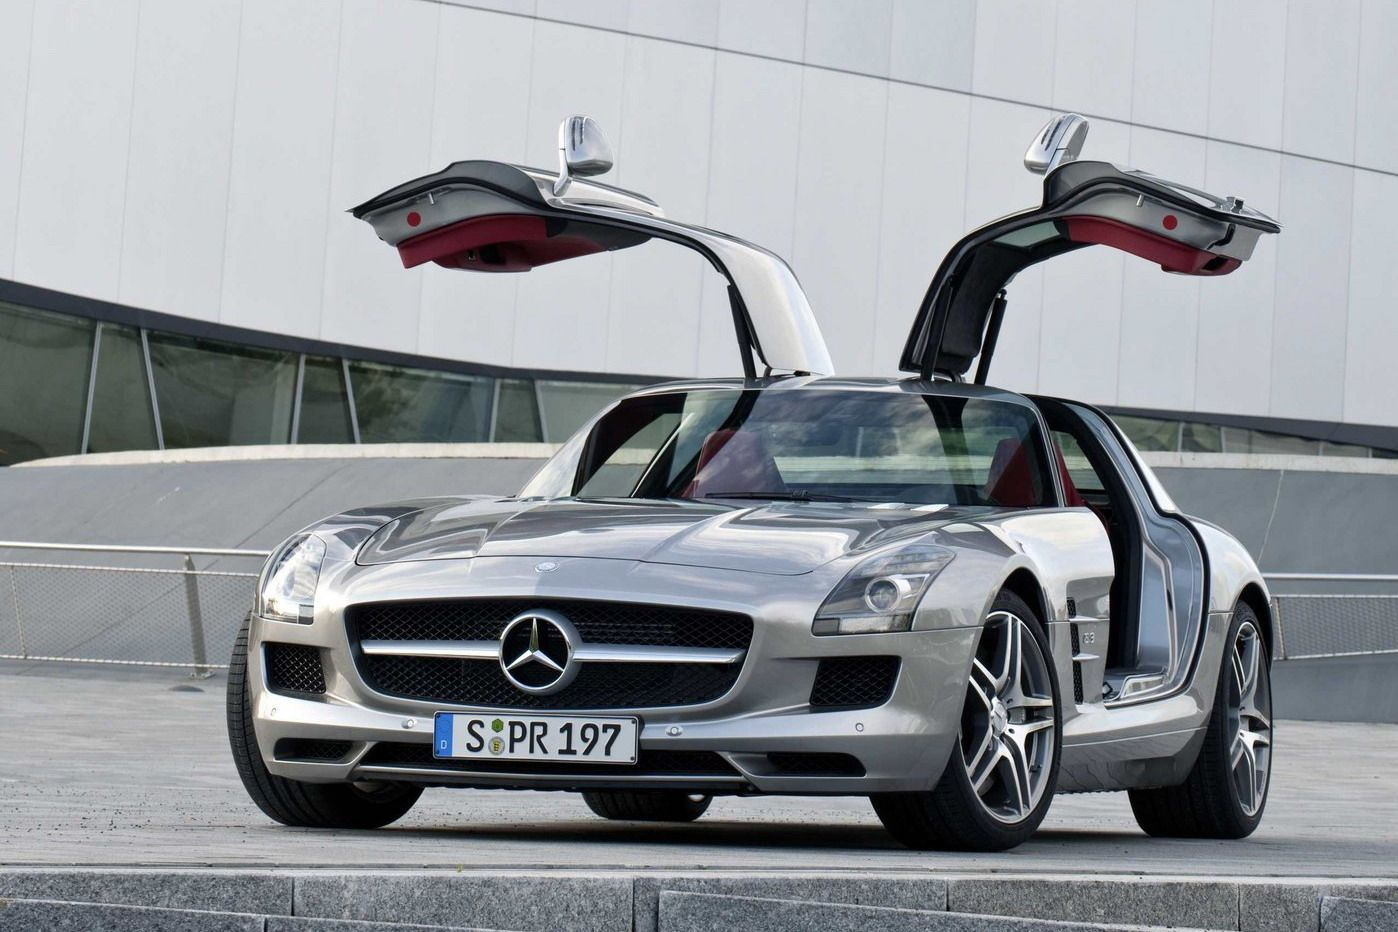 cars amg vehicles mercedes-benz HD Wallpaper